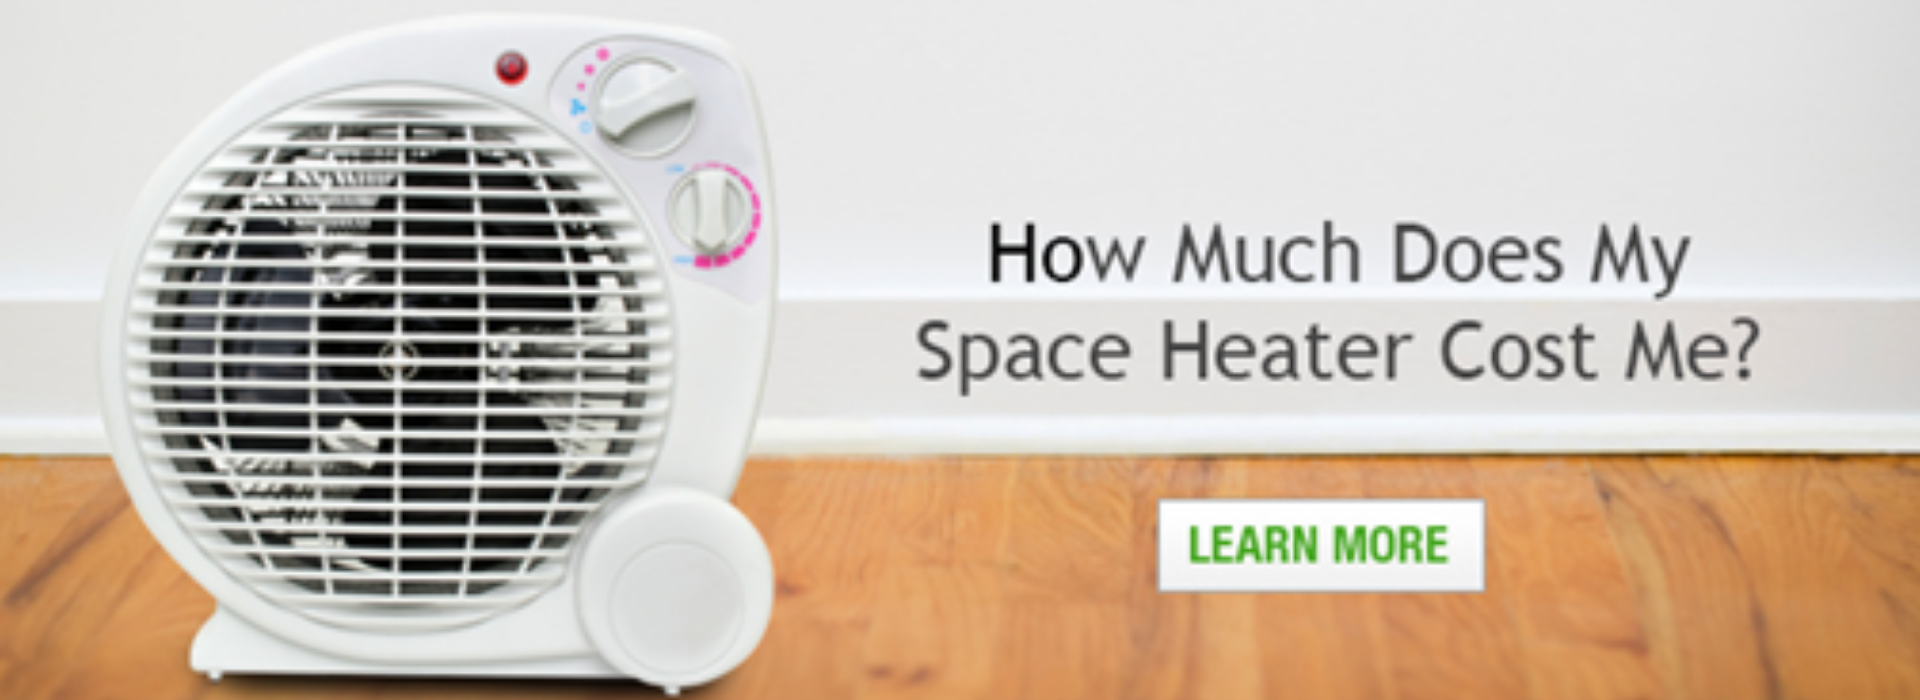 How much does your space heater cost to run